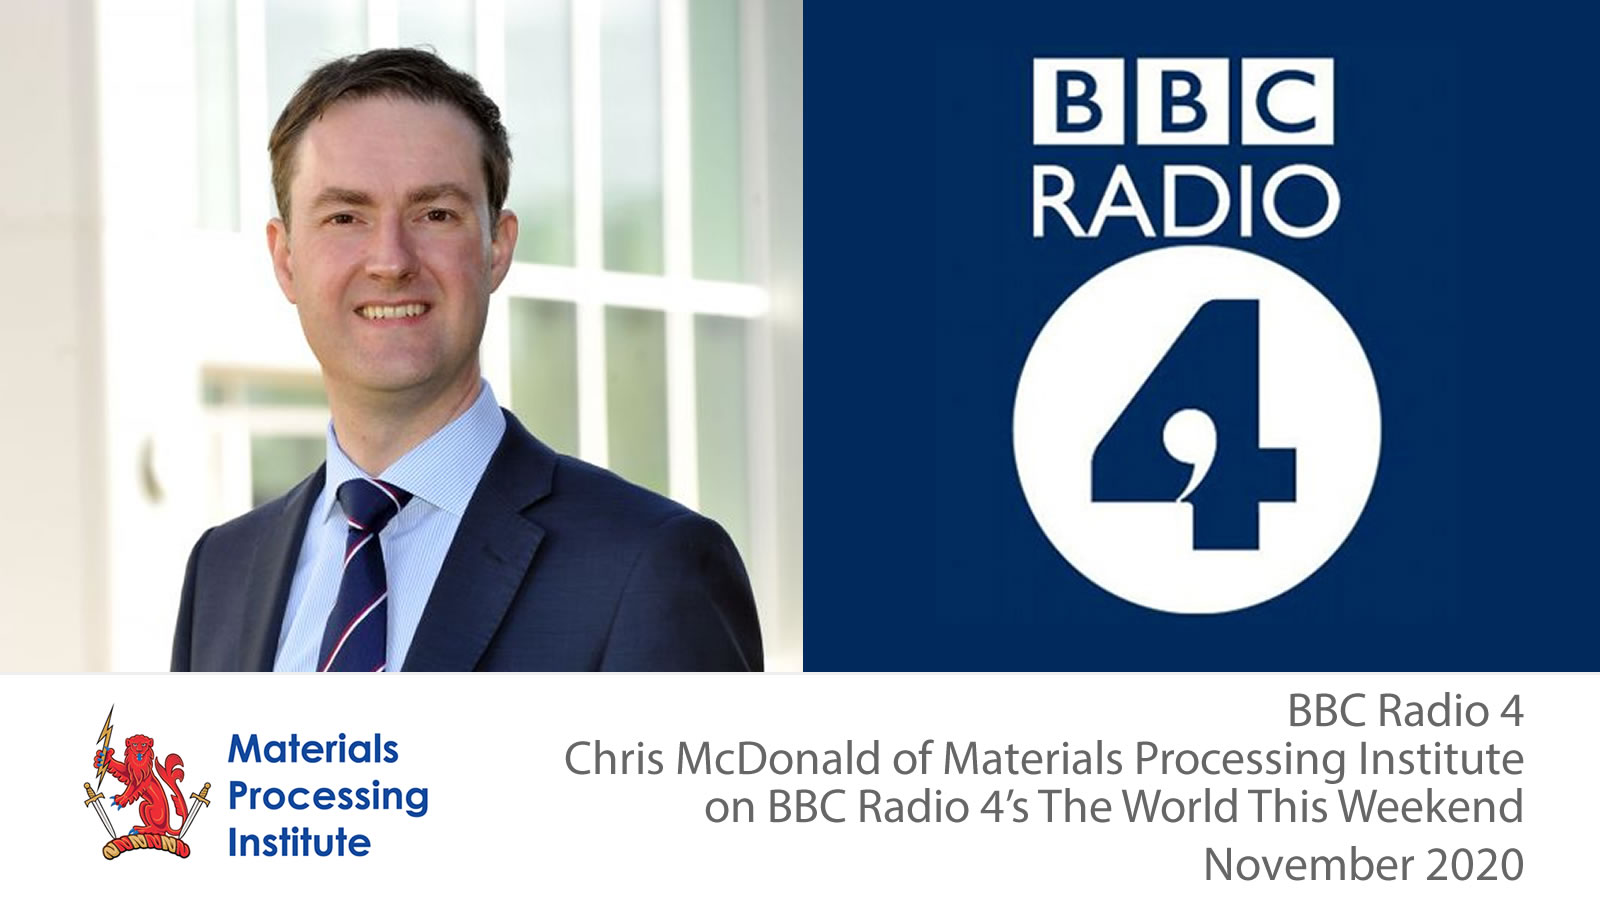 Chris McDonald of Materials Processing Institute on the Futre of Teesside - November 2020